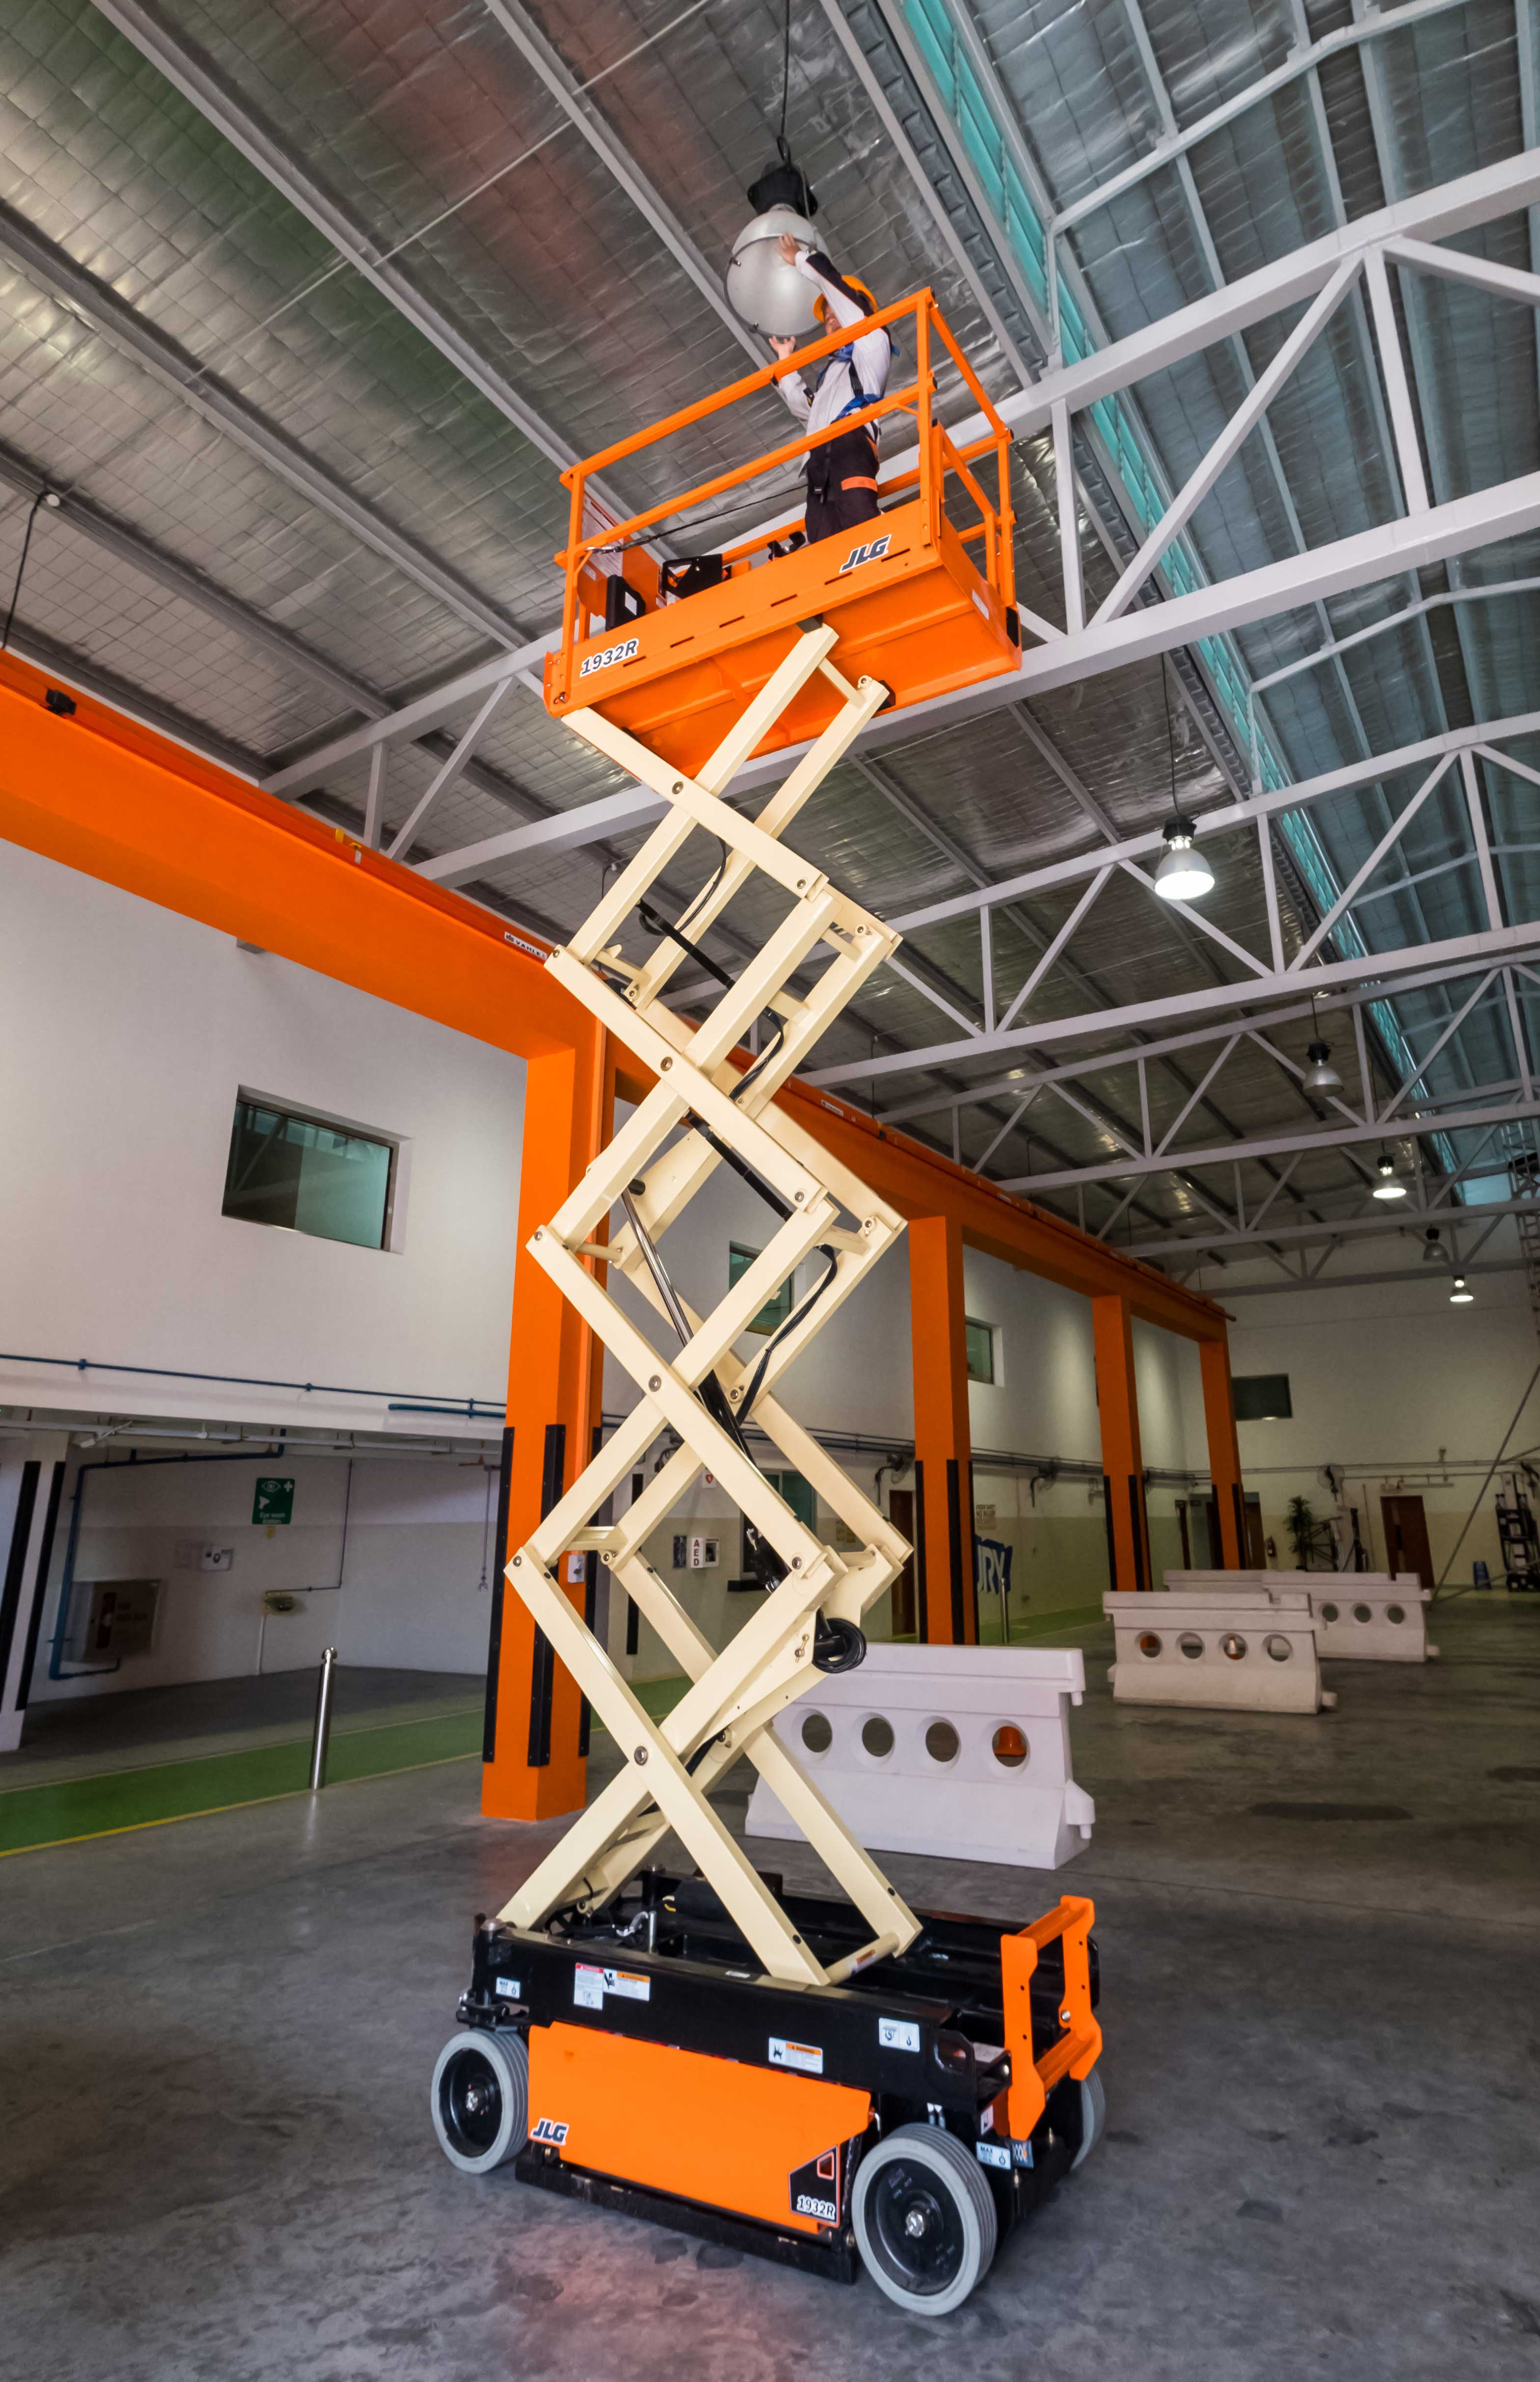 Scissor Lift Rental Prices Home Depot